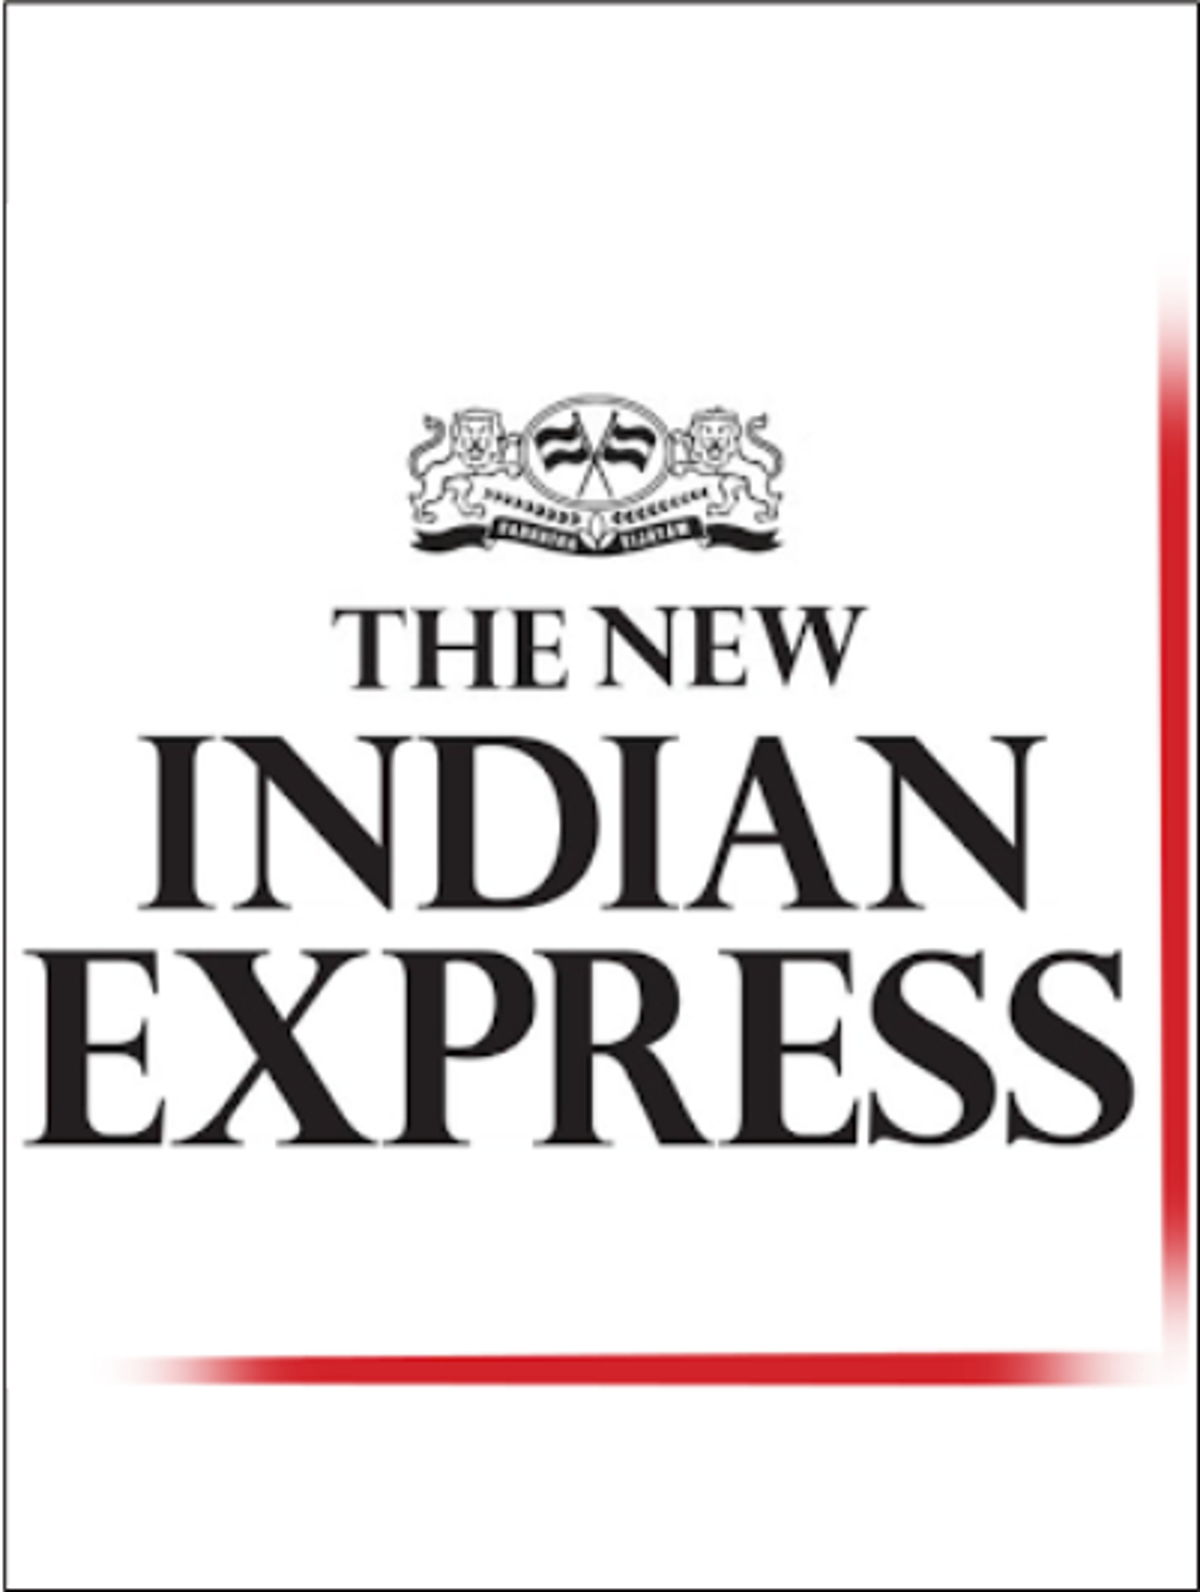 Indian Express News Bote A Mano Ladies Footwear